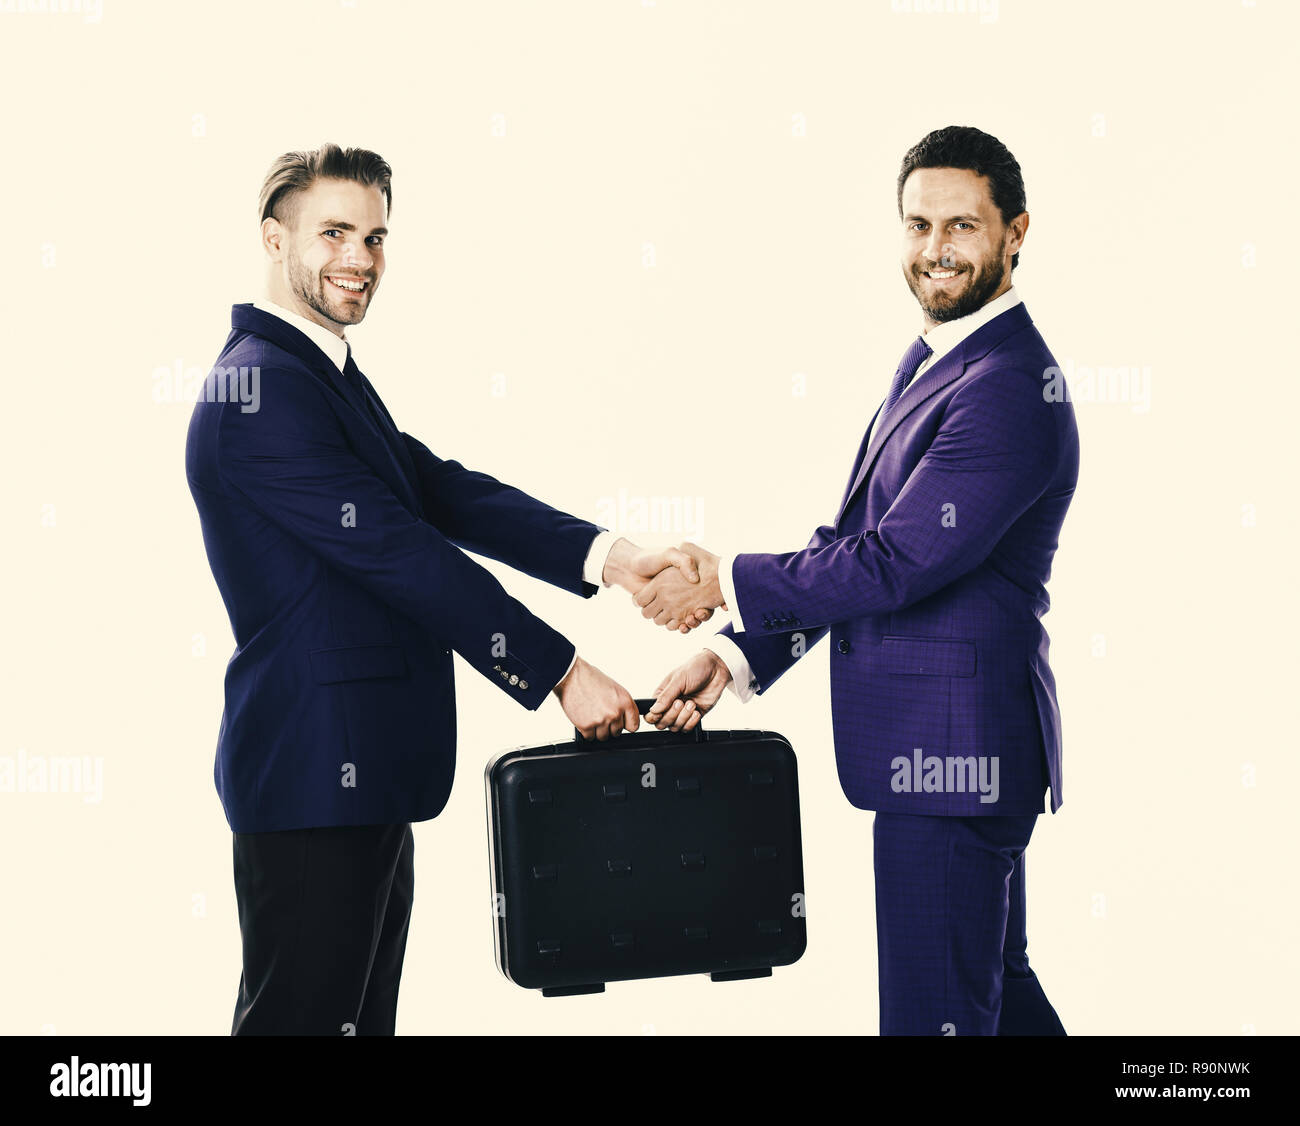 Handover of suitcase in hands of partners on white background. Businessmen with happy faces shaking hands and hold briefcase. Business exchange between businessmen in suits. Successful deal concept. - Stock Image